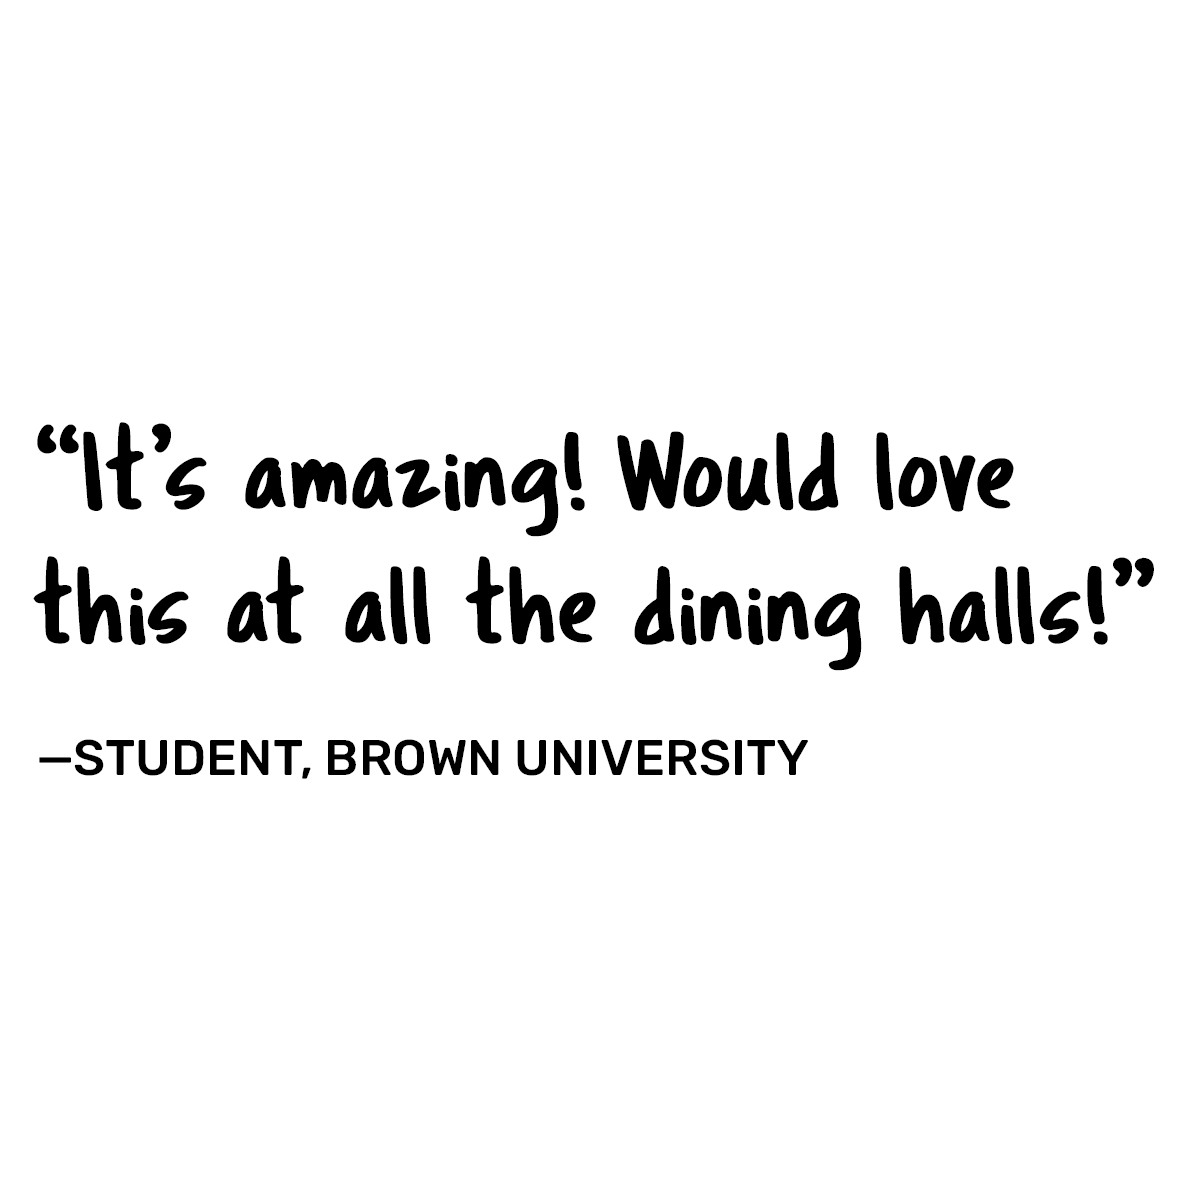 amazing would love at dining halls square.png